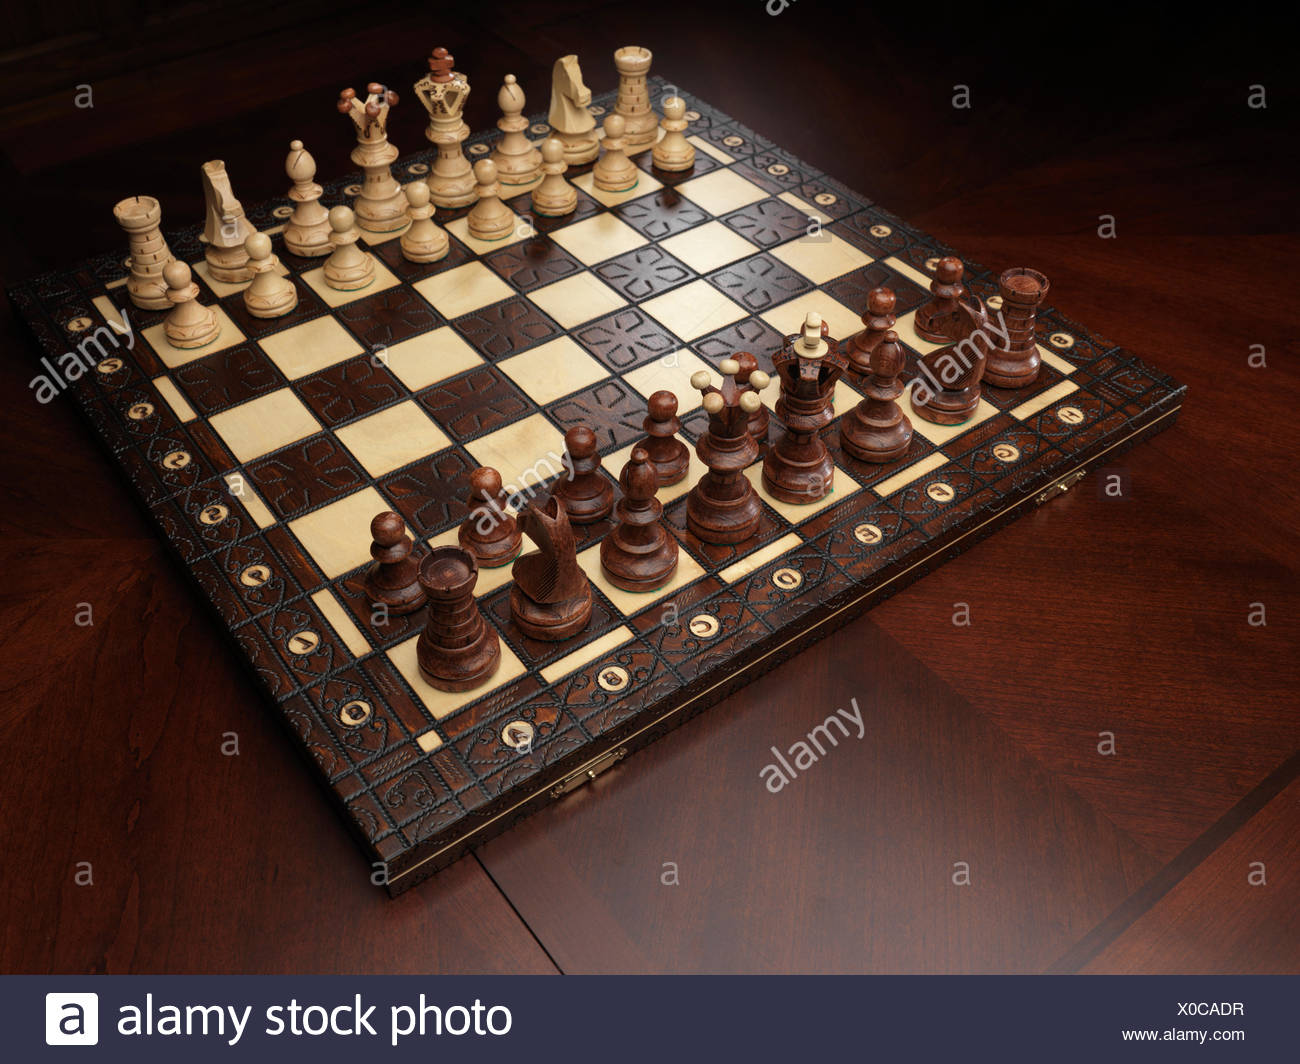 Chessboard on a table - Stock Image